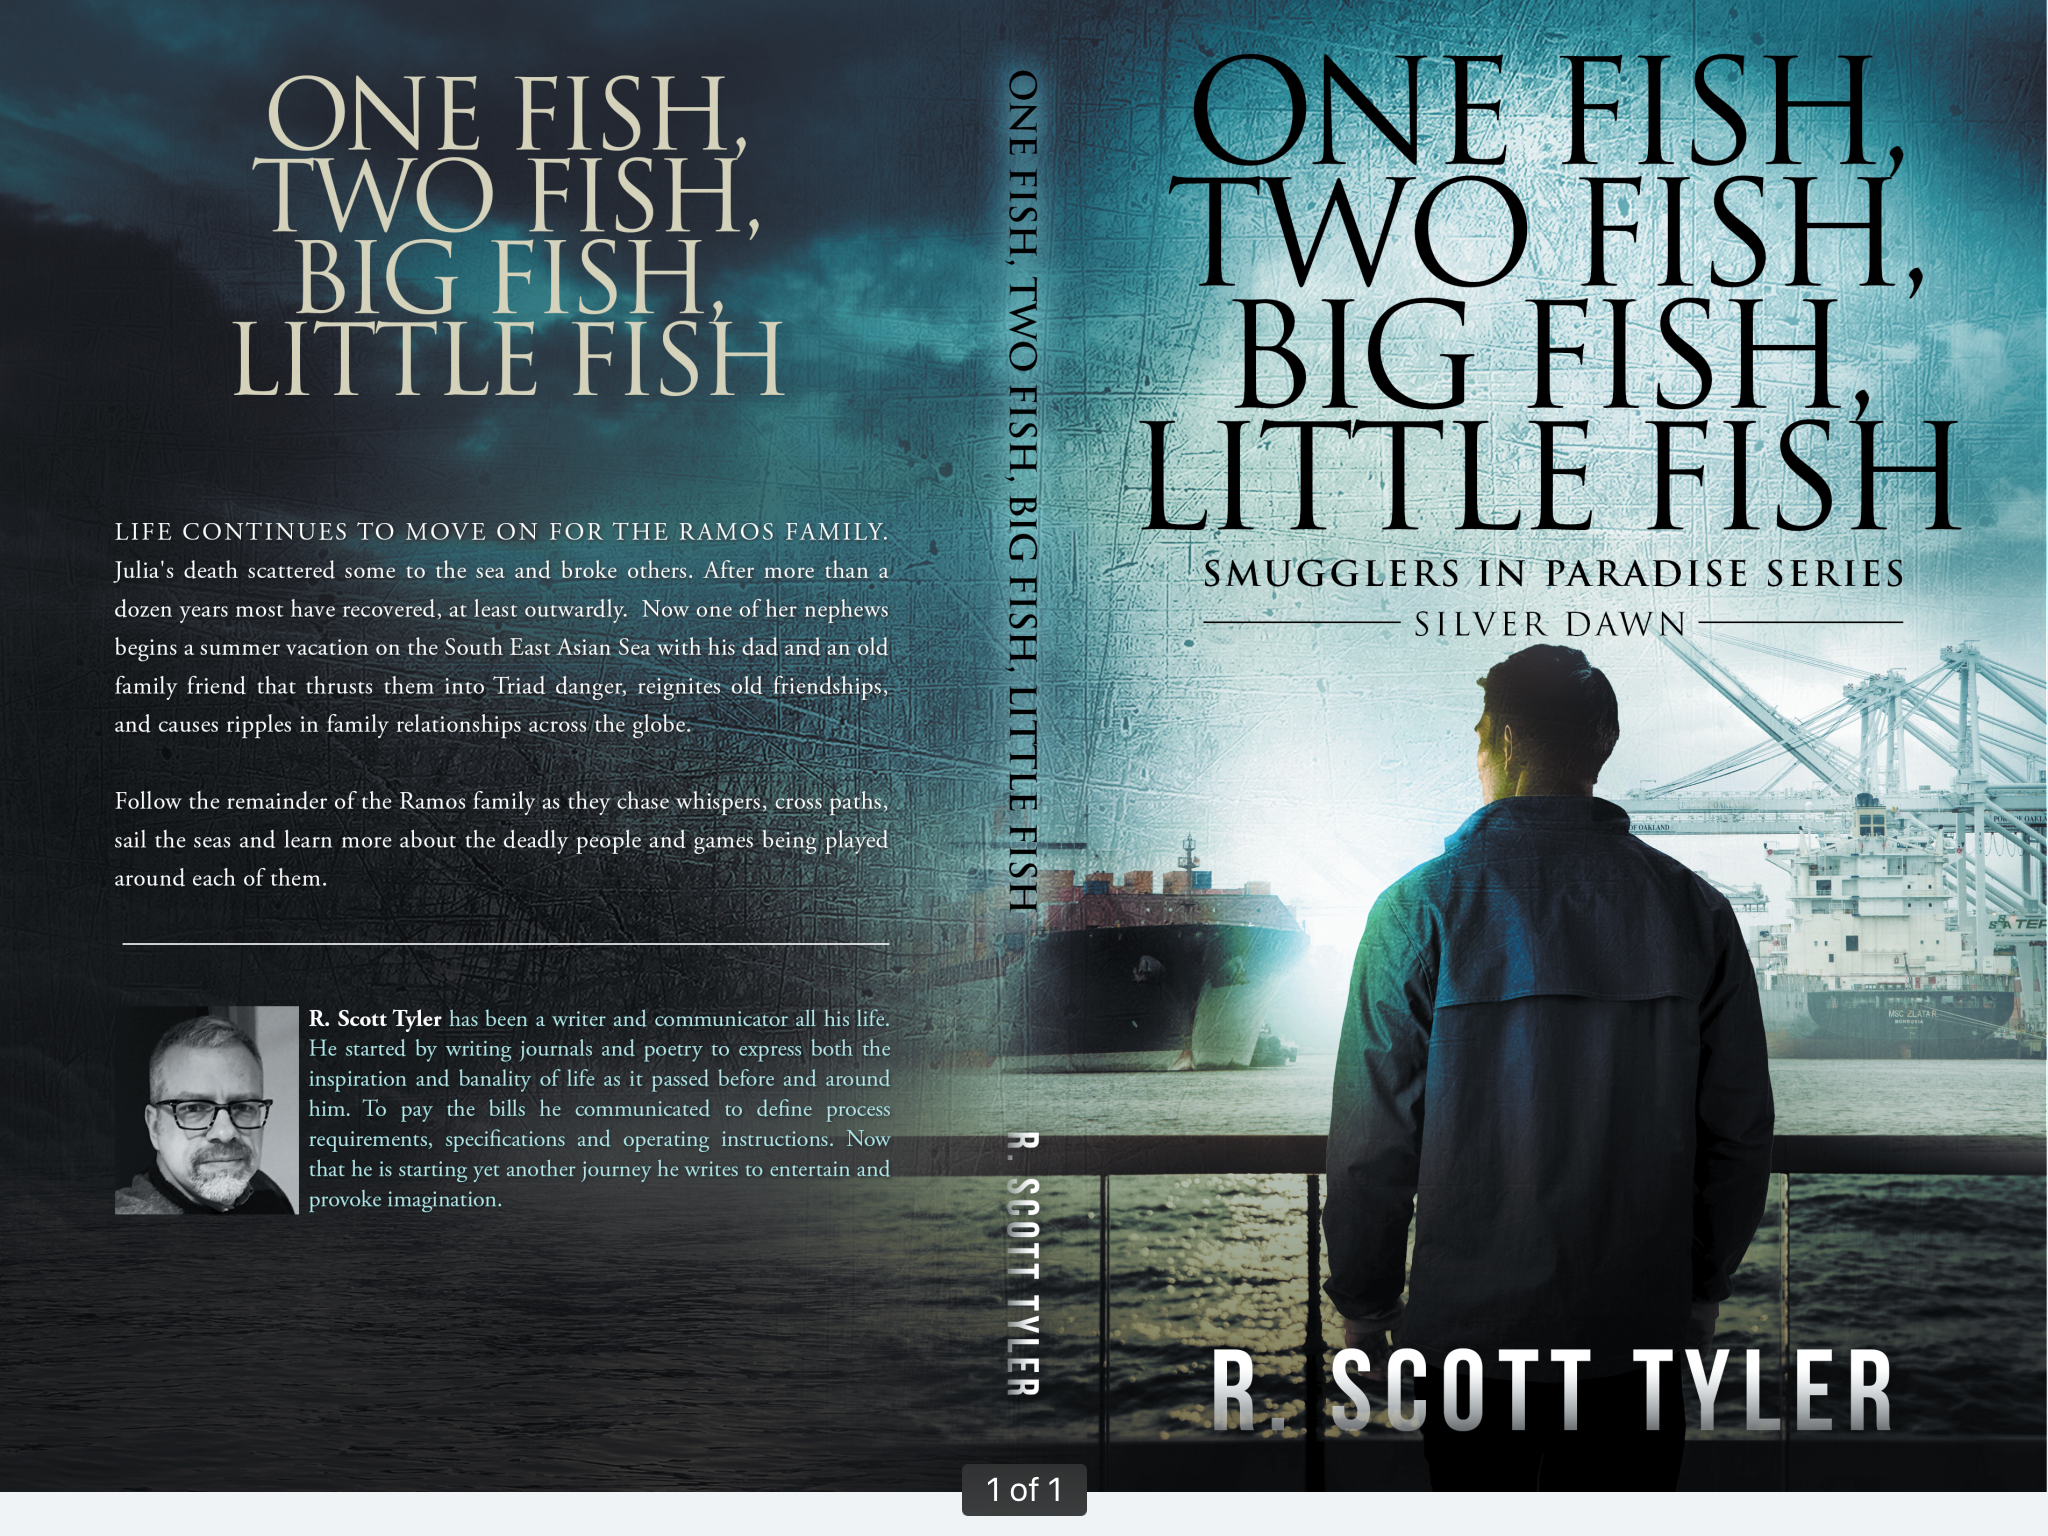 One Fish, Two Fish, Big Fish, Little Fish